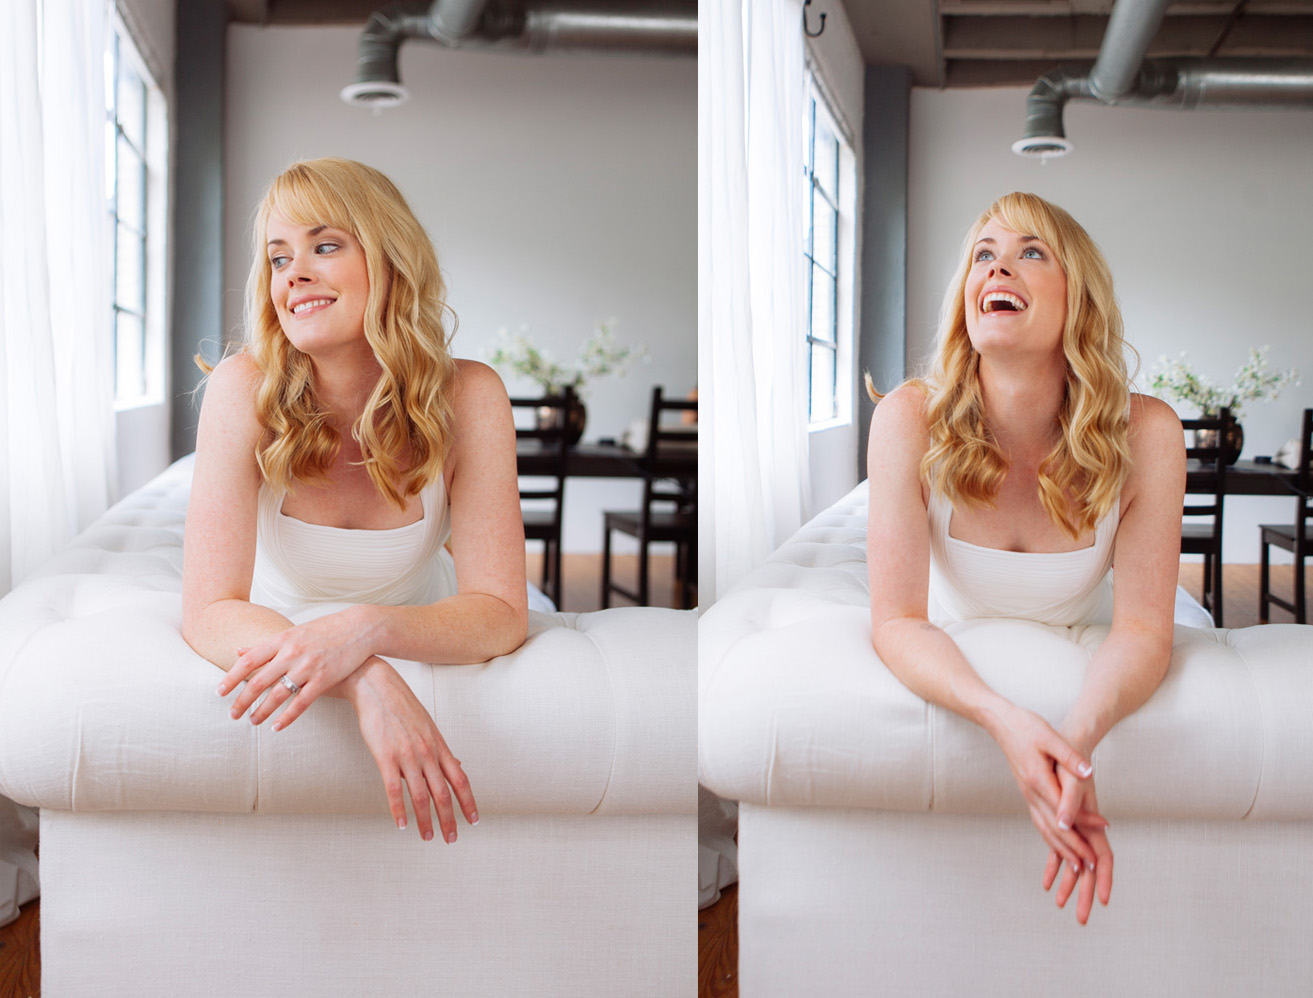 Abigail Hawk - one of the best traits of a good subject is the ability to laugh during the photoshoot